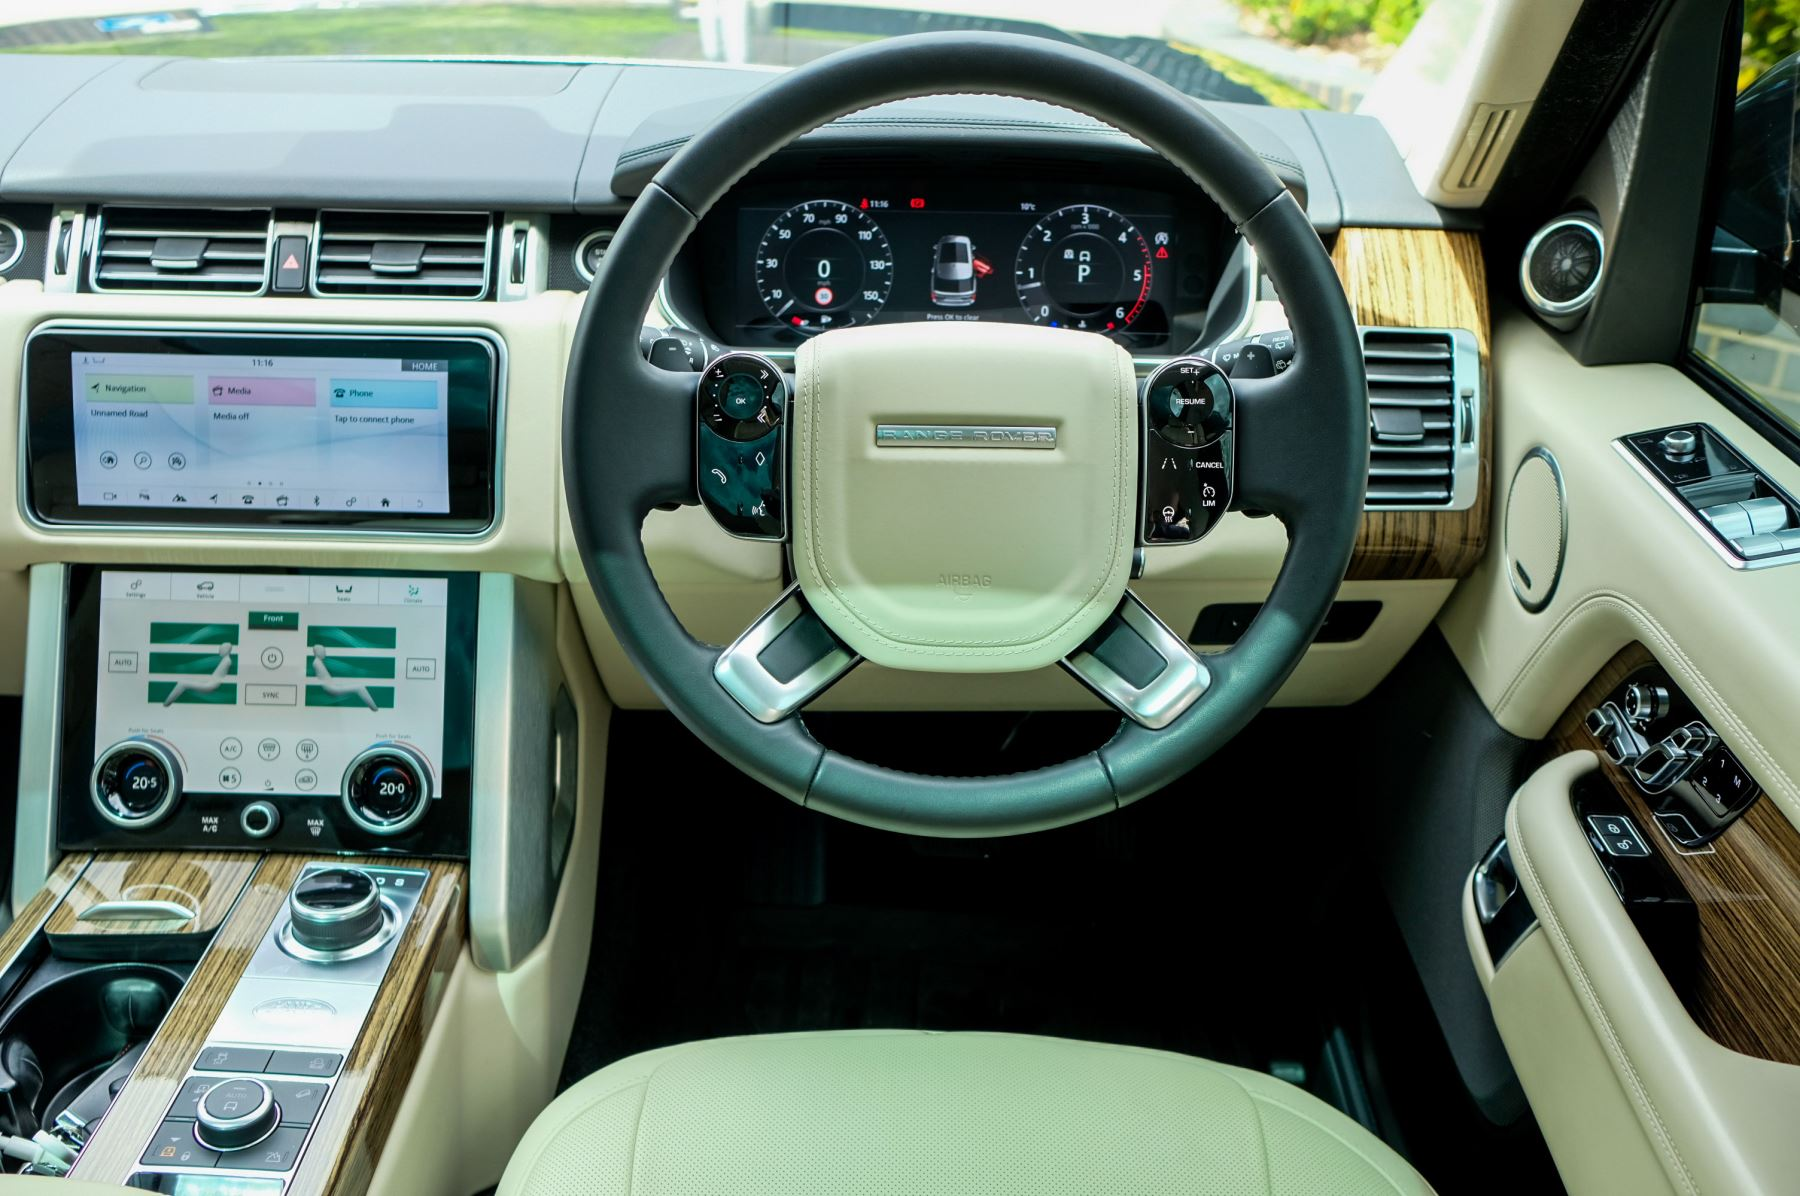 Land Rover Range Rover 3.0 SDV6 Vogue SE - Panoramic Roof - Privacy Glass - 21 inch Alloys image 22